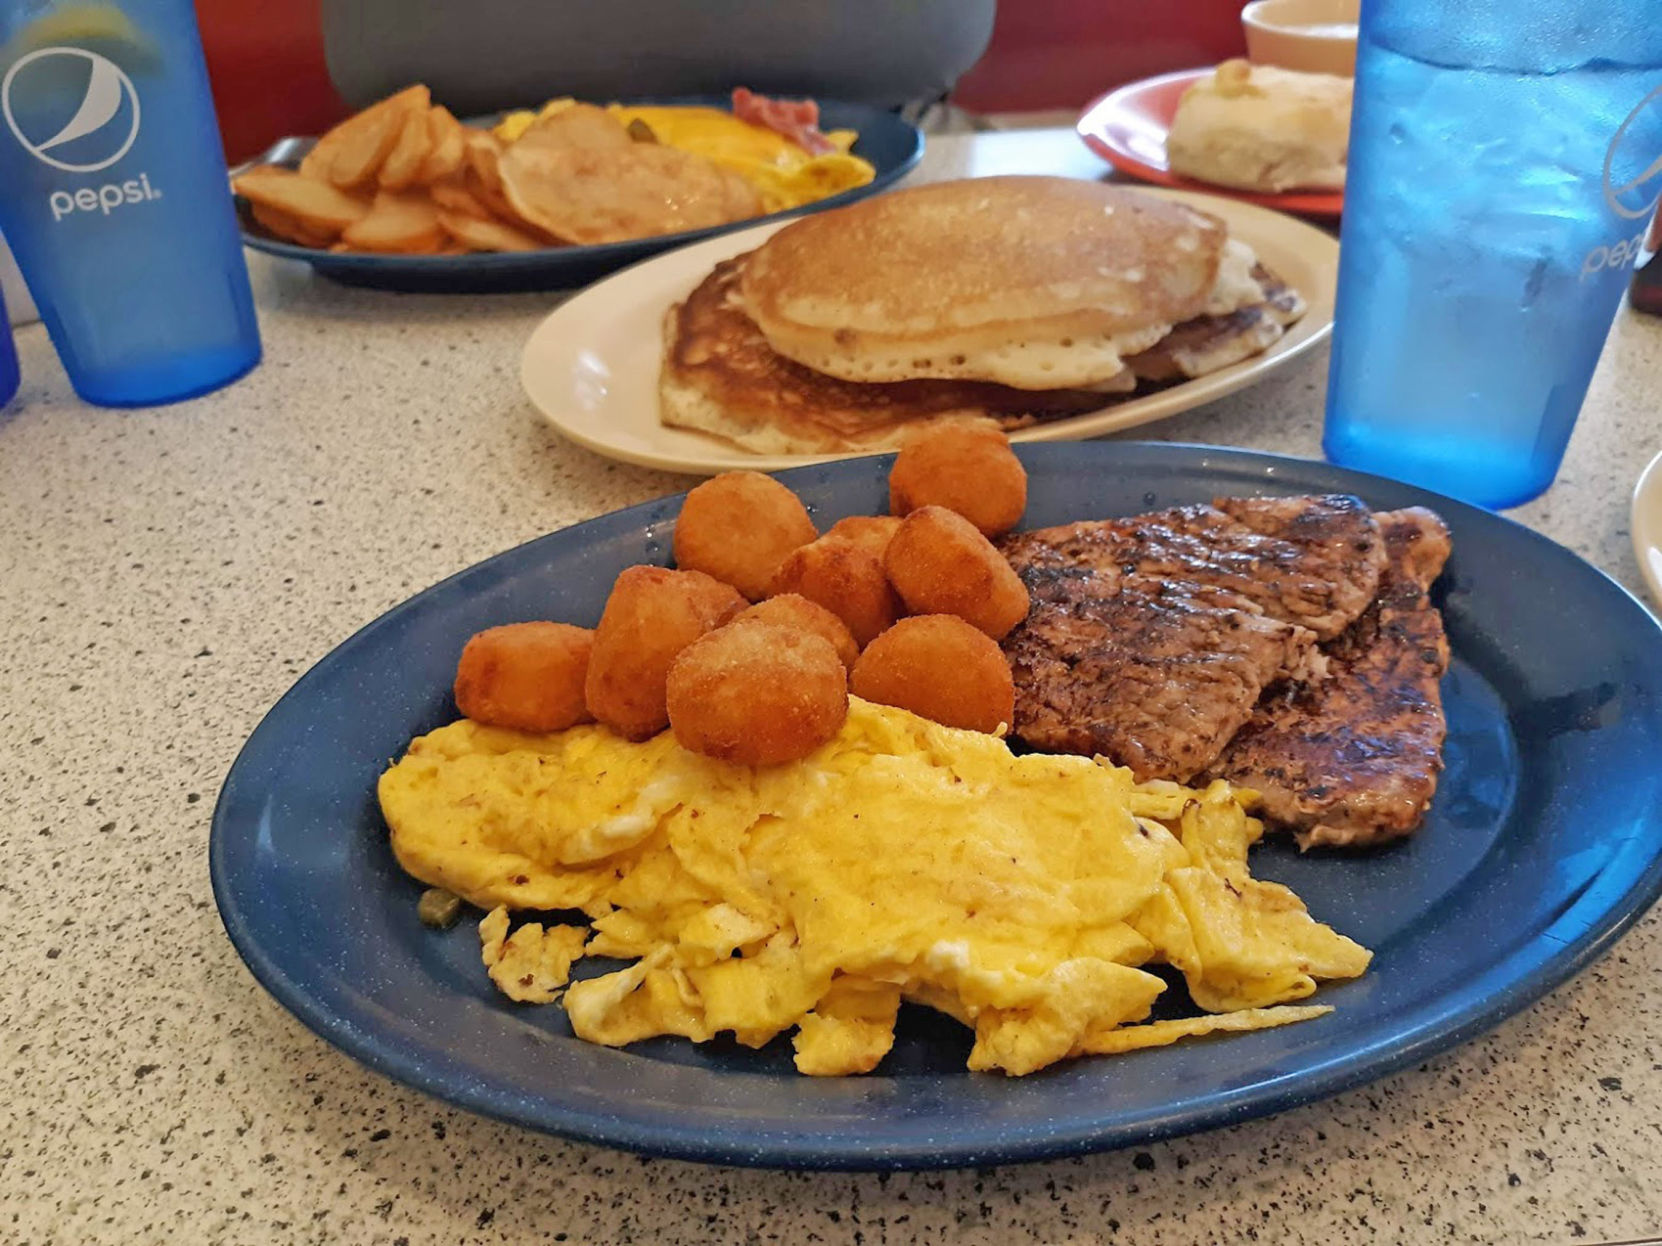 Breakfast All Day Bluff City Diner Offers Breakfast All Day And Much More